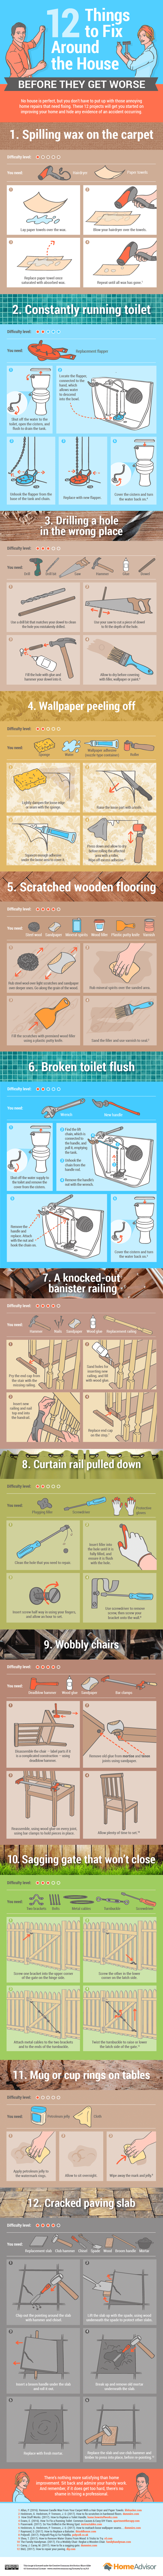 12 Things To Fix Around The House Before They Get Worse